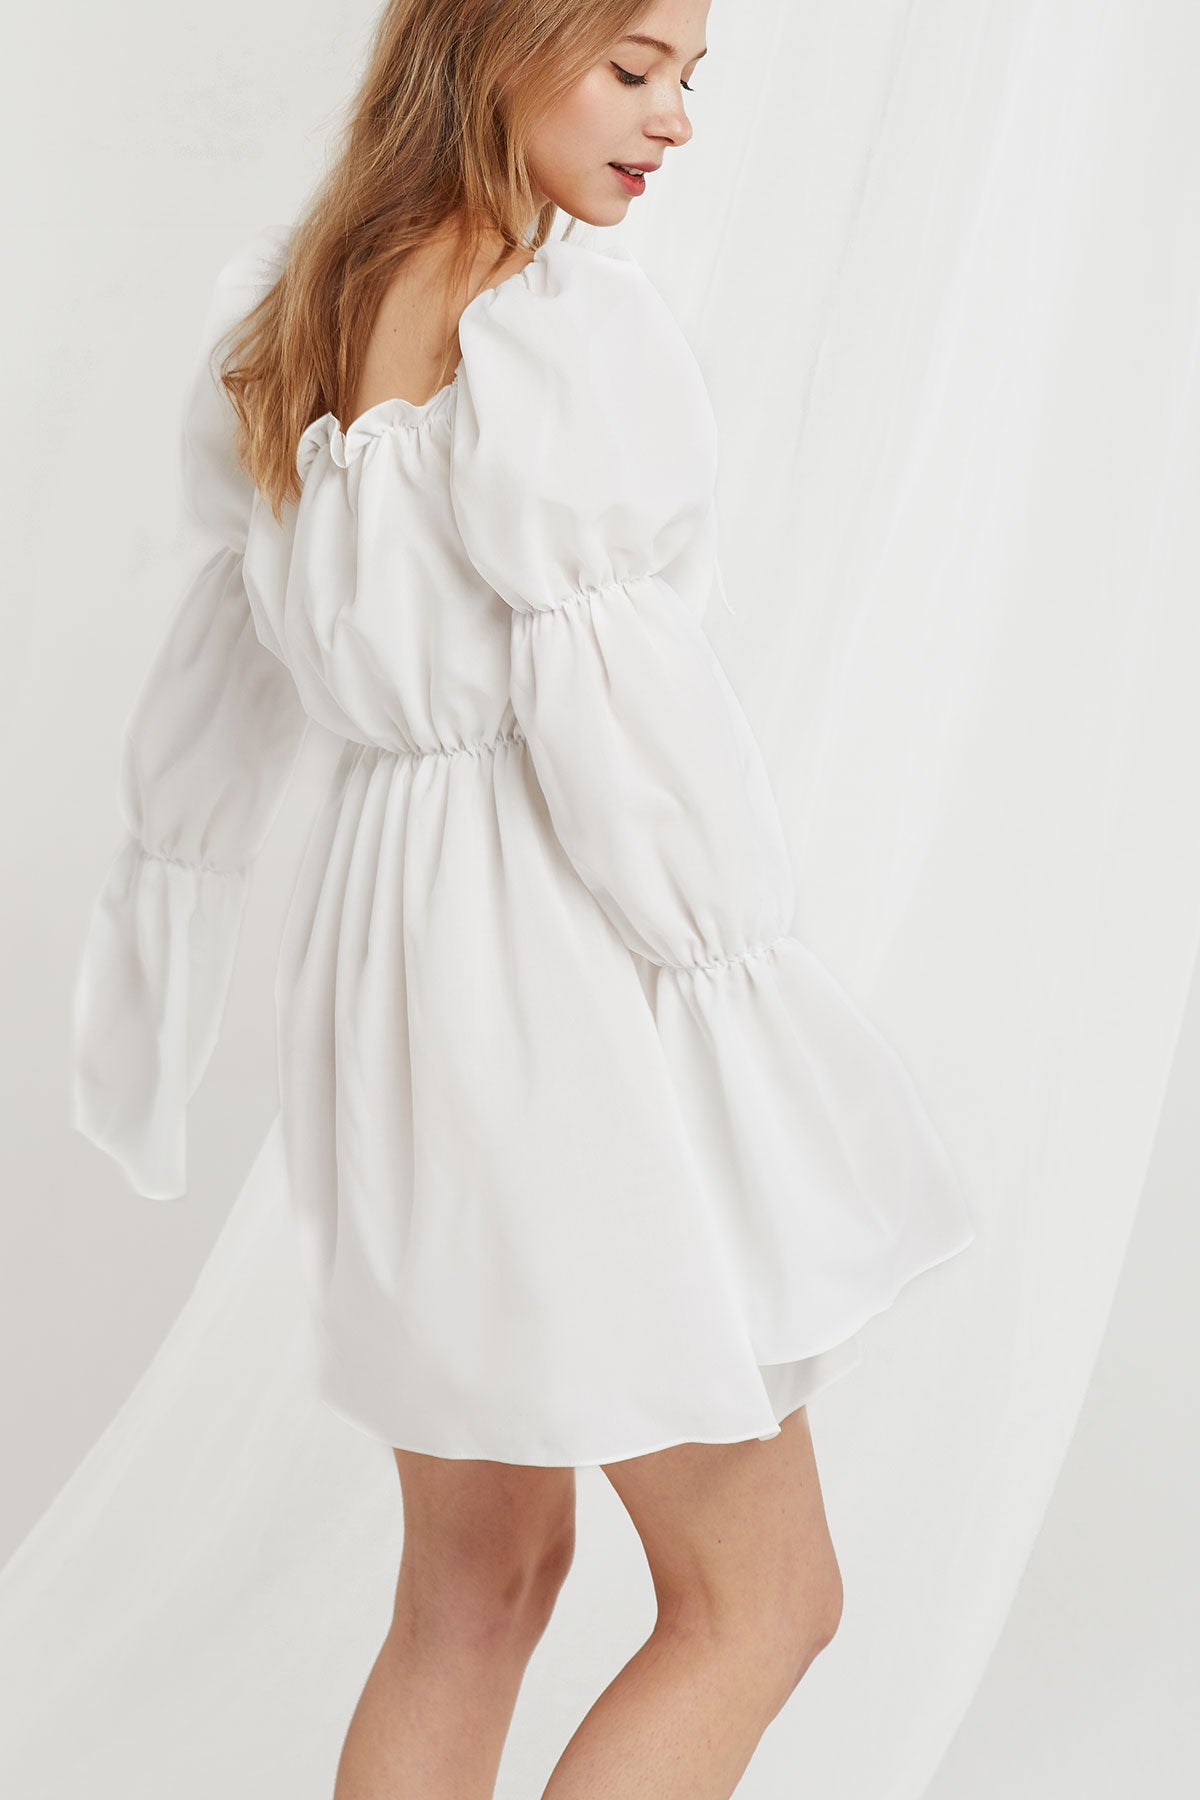 Effie Marie Sleeves Dress (Pre-Order)